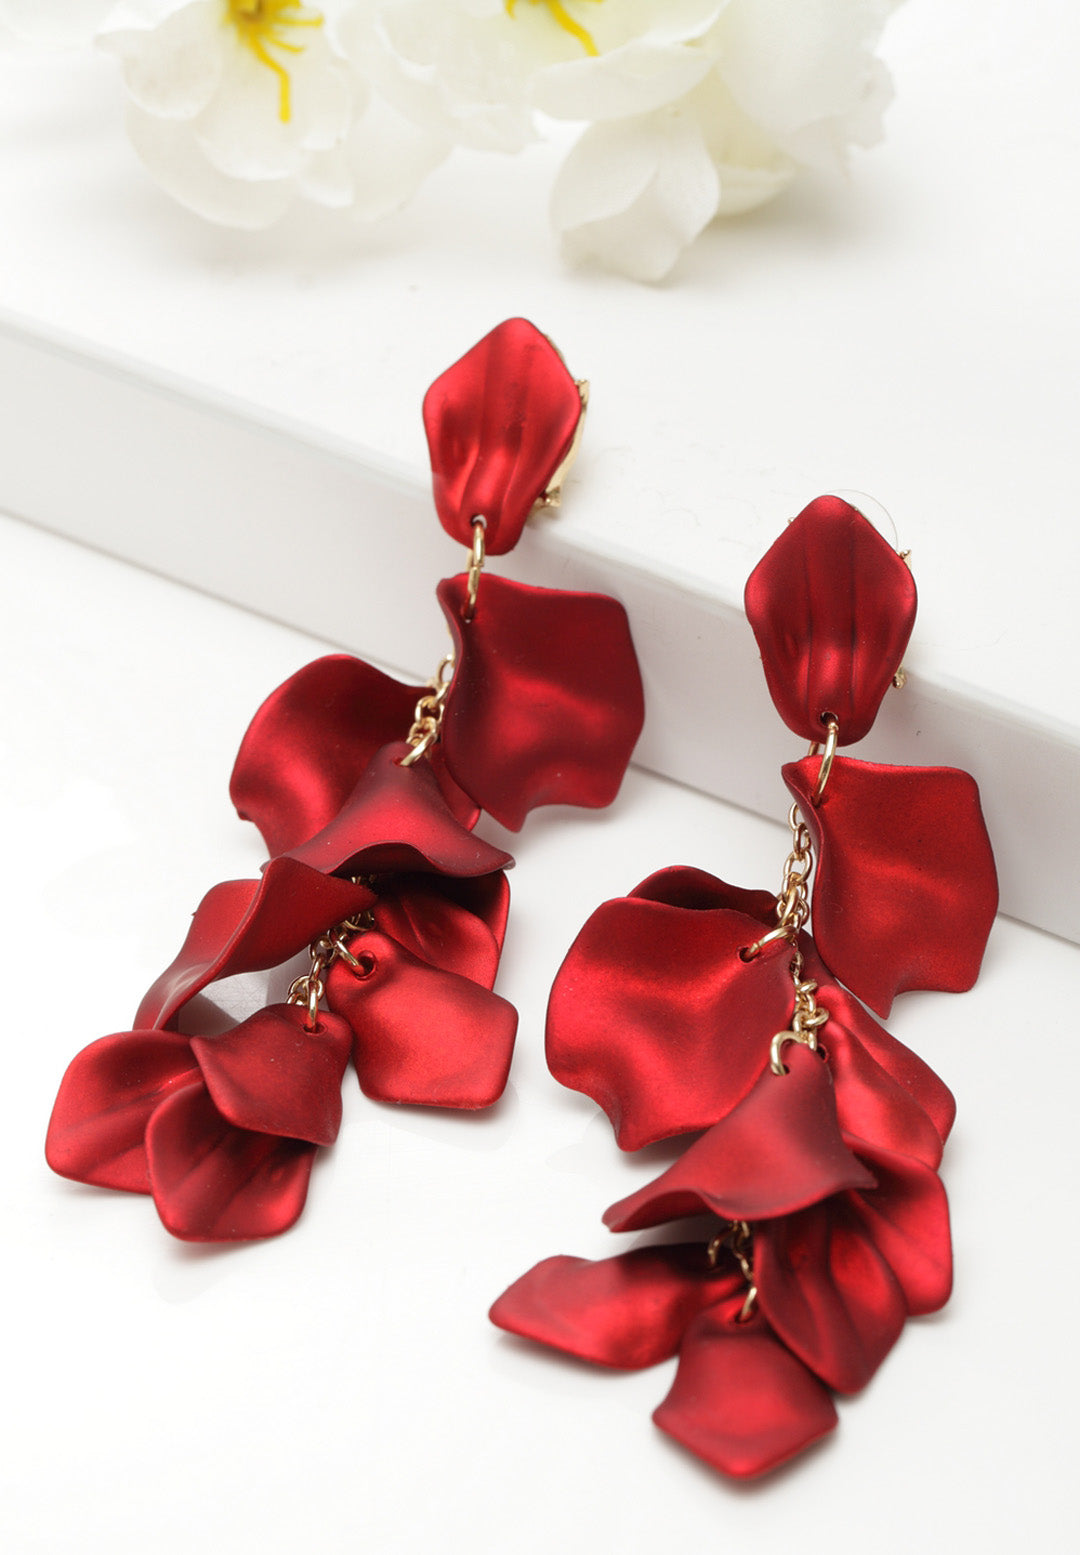 Avant-Garde Paris Luxury Statement Petals Shape Long Earrings